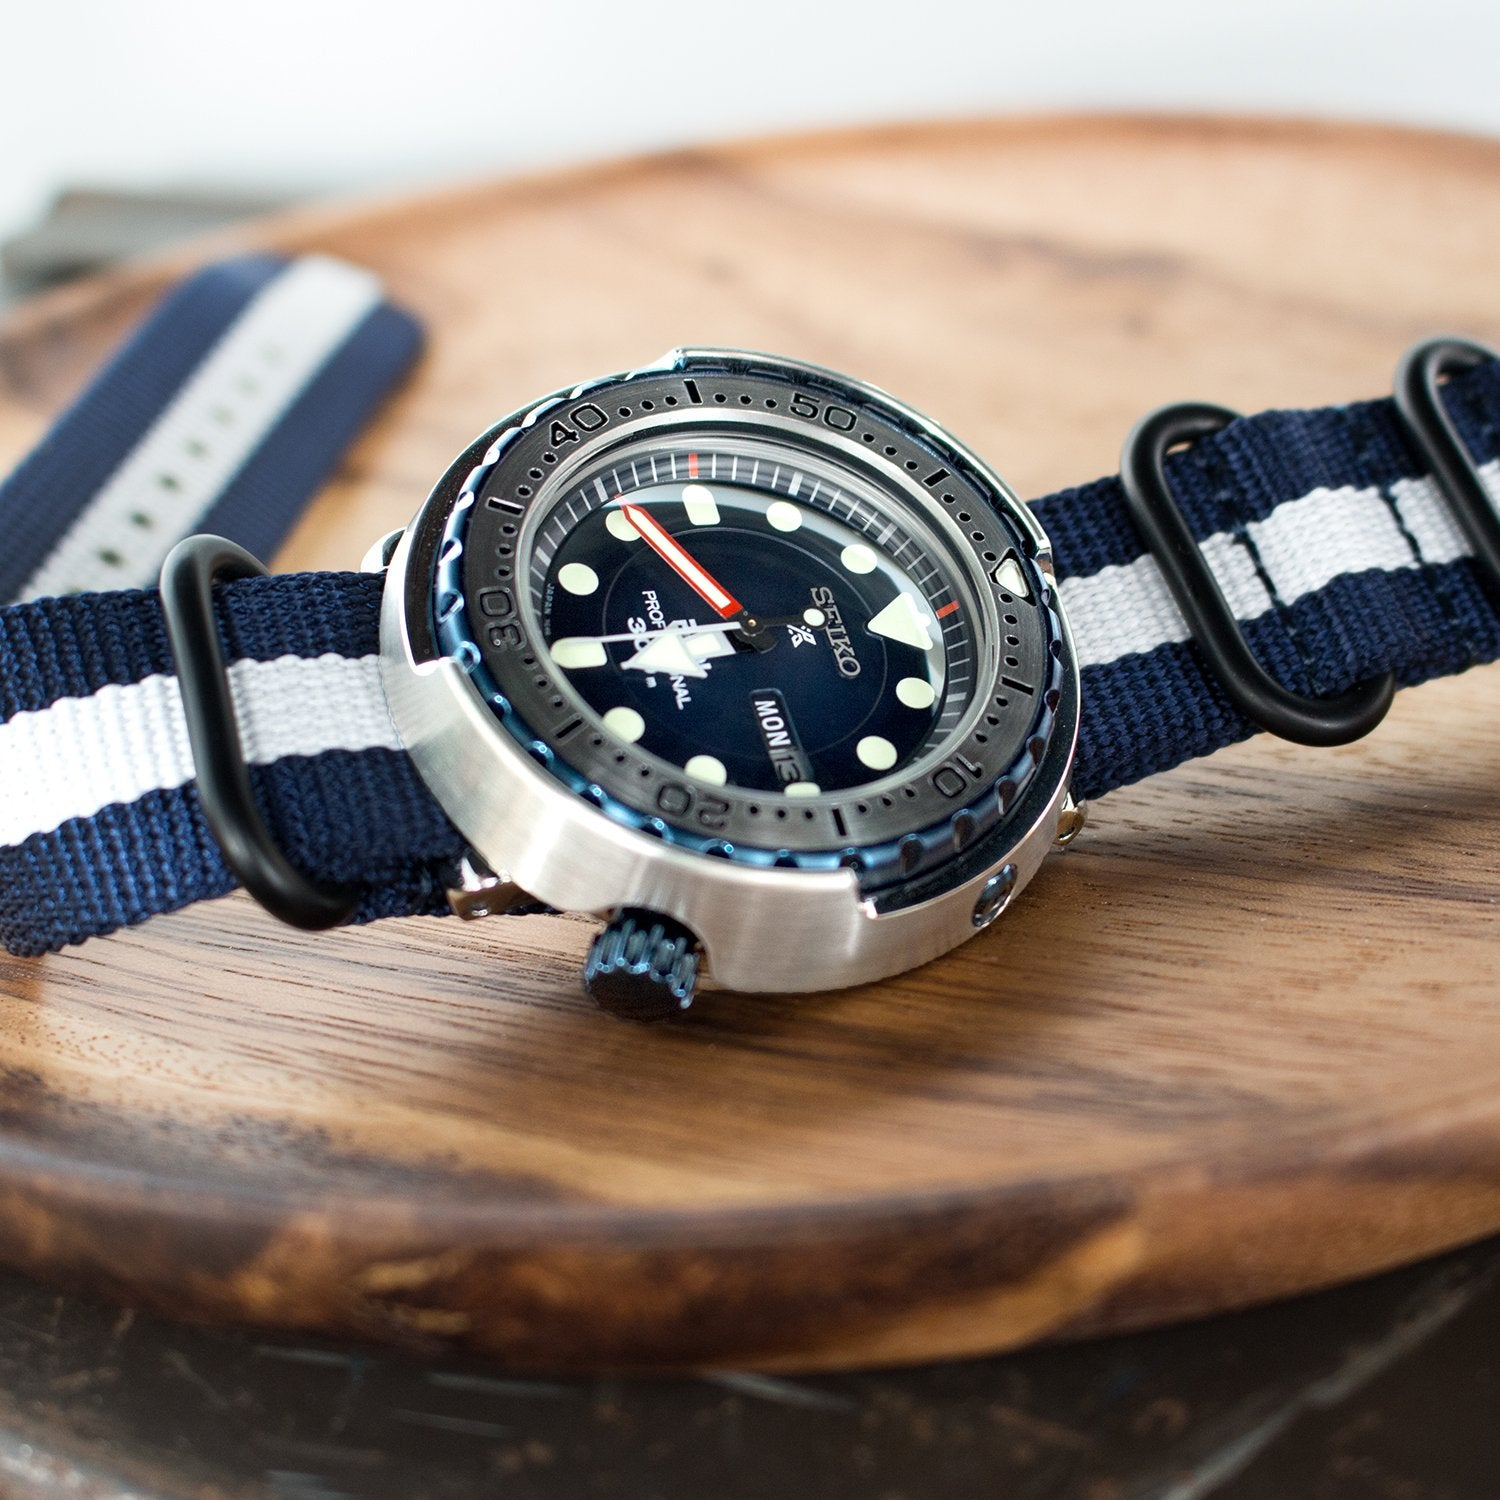 MiLTAT 22mm 3 Rings G10 Zulu Watch Strap Ballistic Nylon Armband Navy Blue & White PVD Black Buckle Strapcode Watch Bands